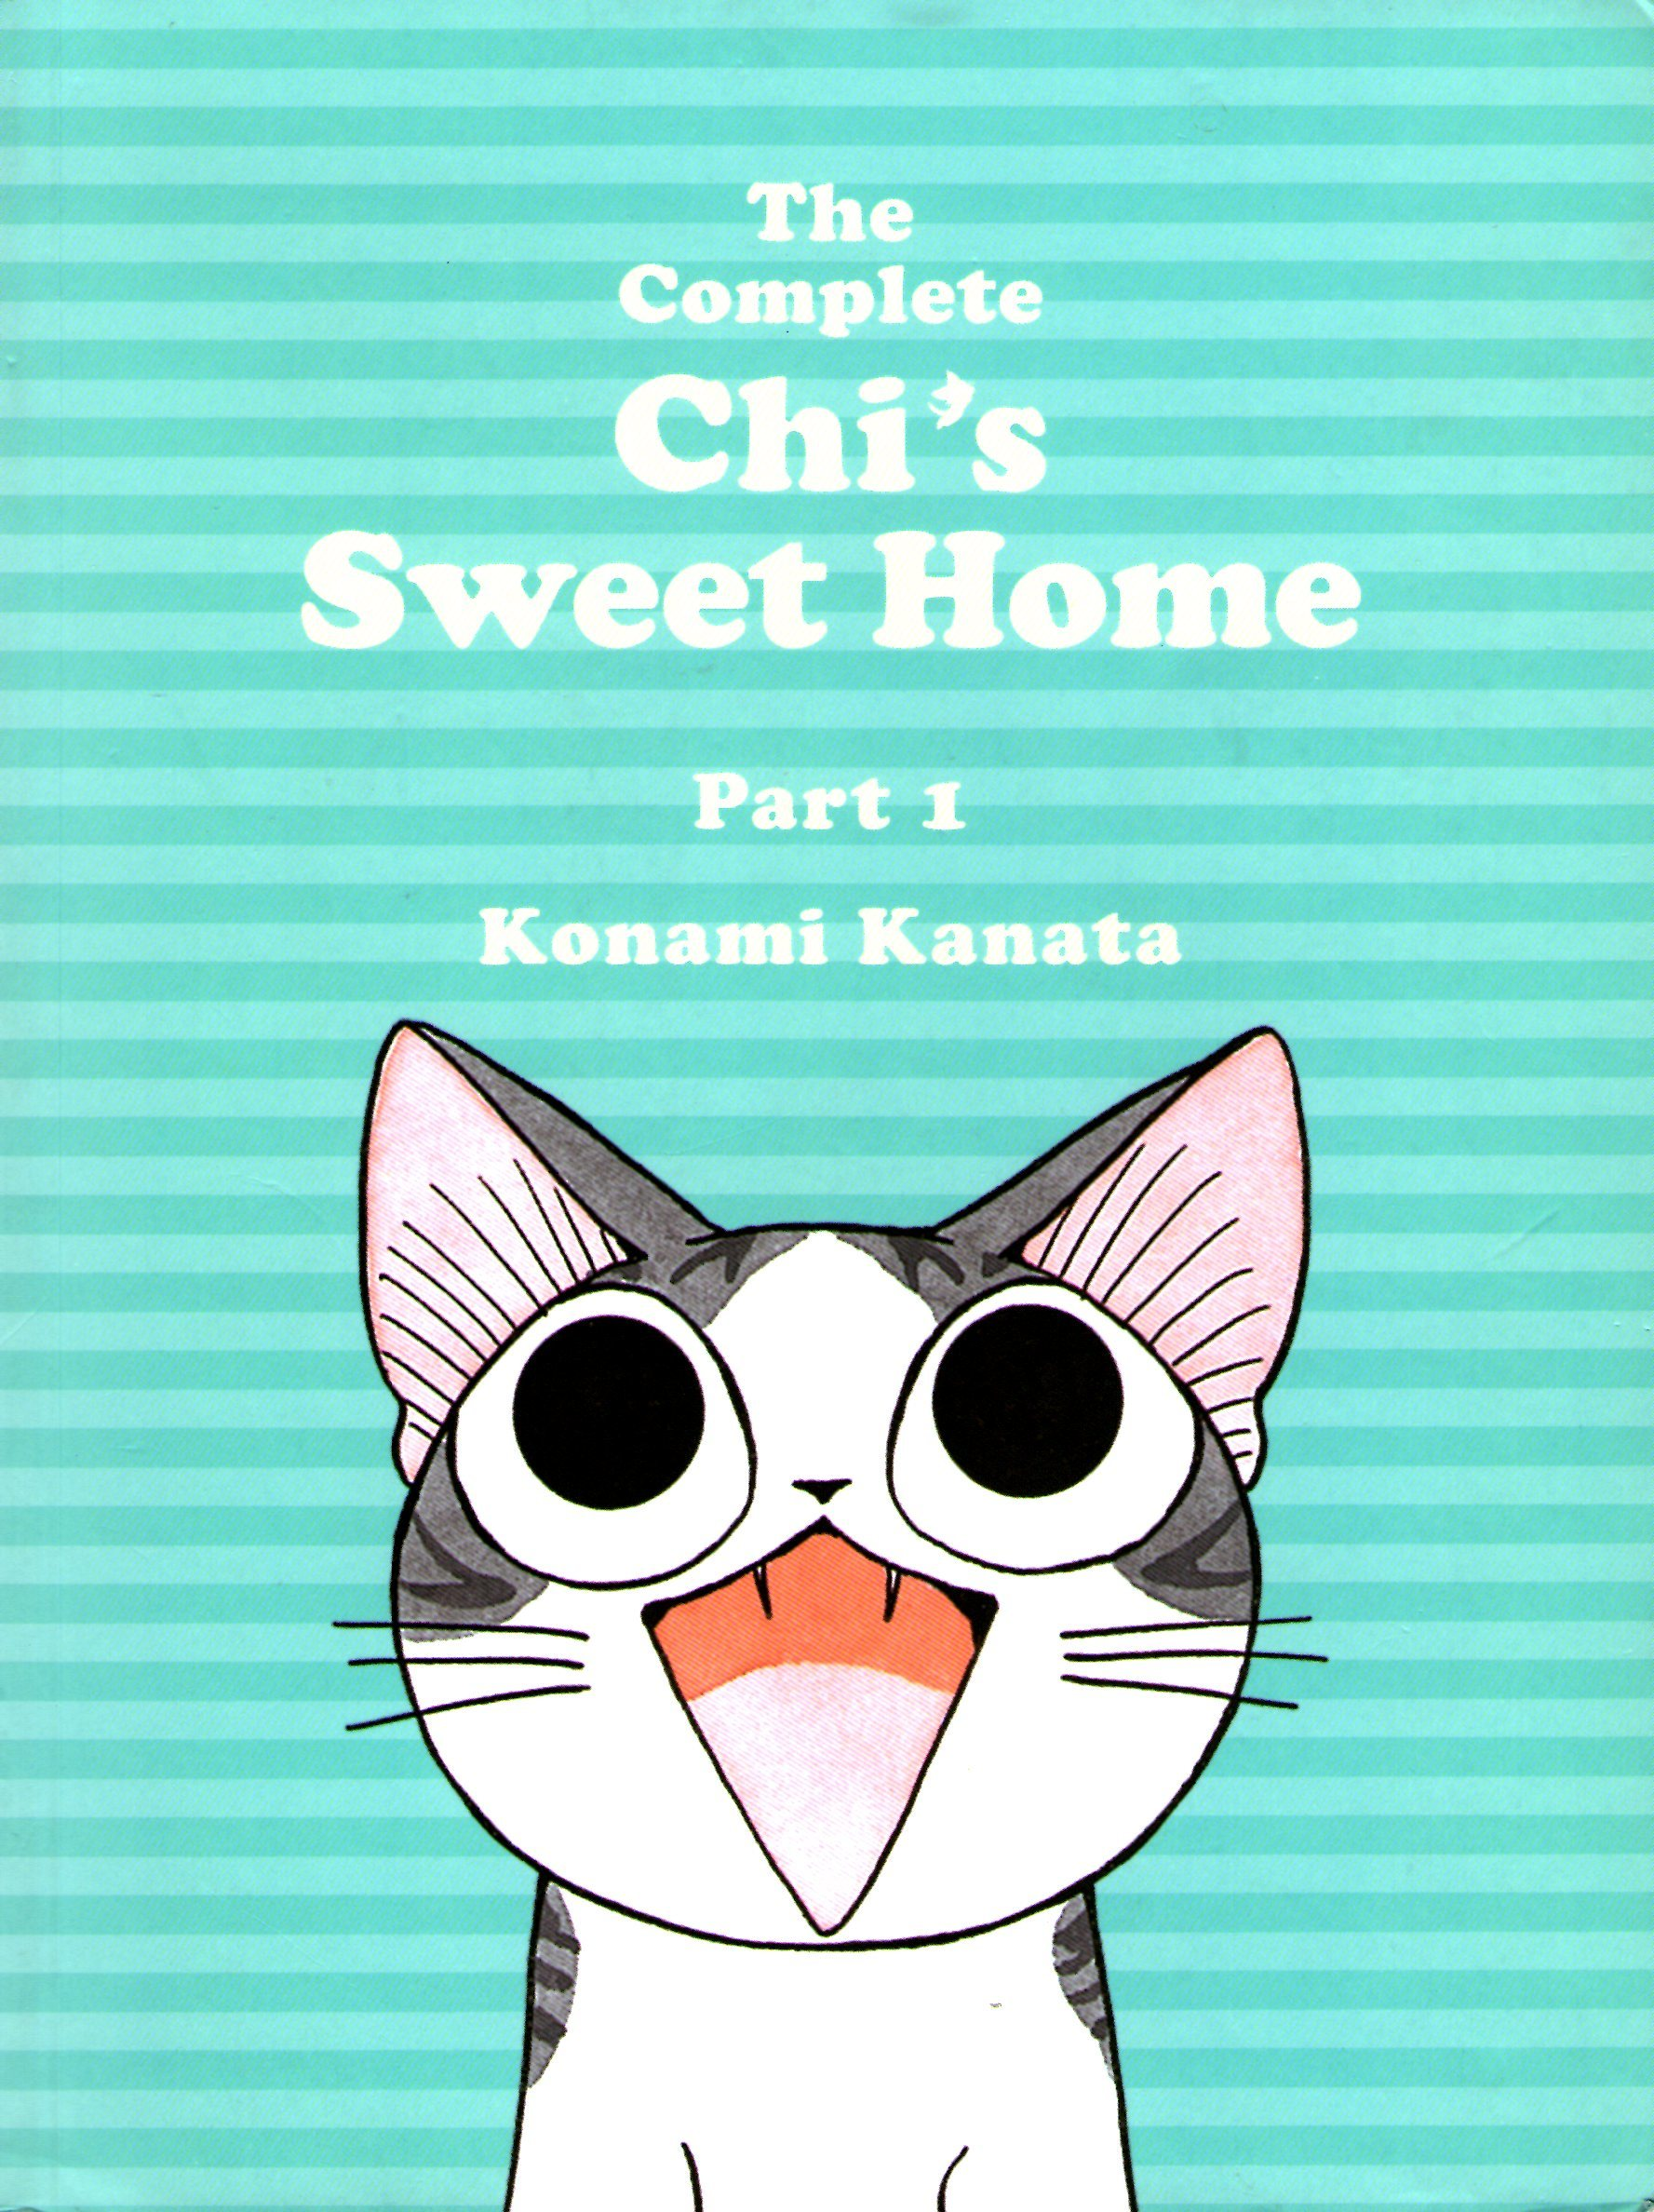 The Complete Chi's Sweet Home, Part 1